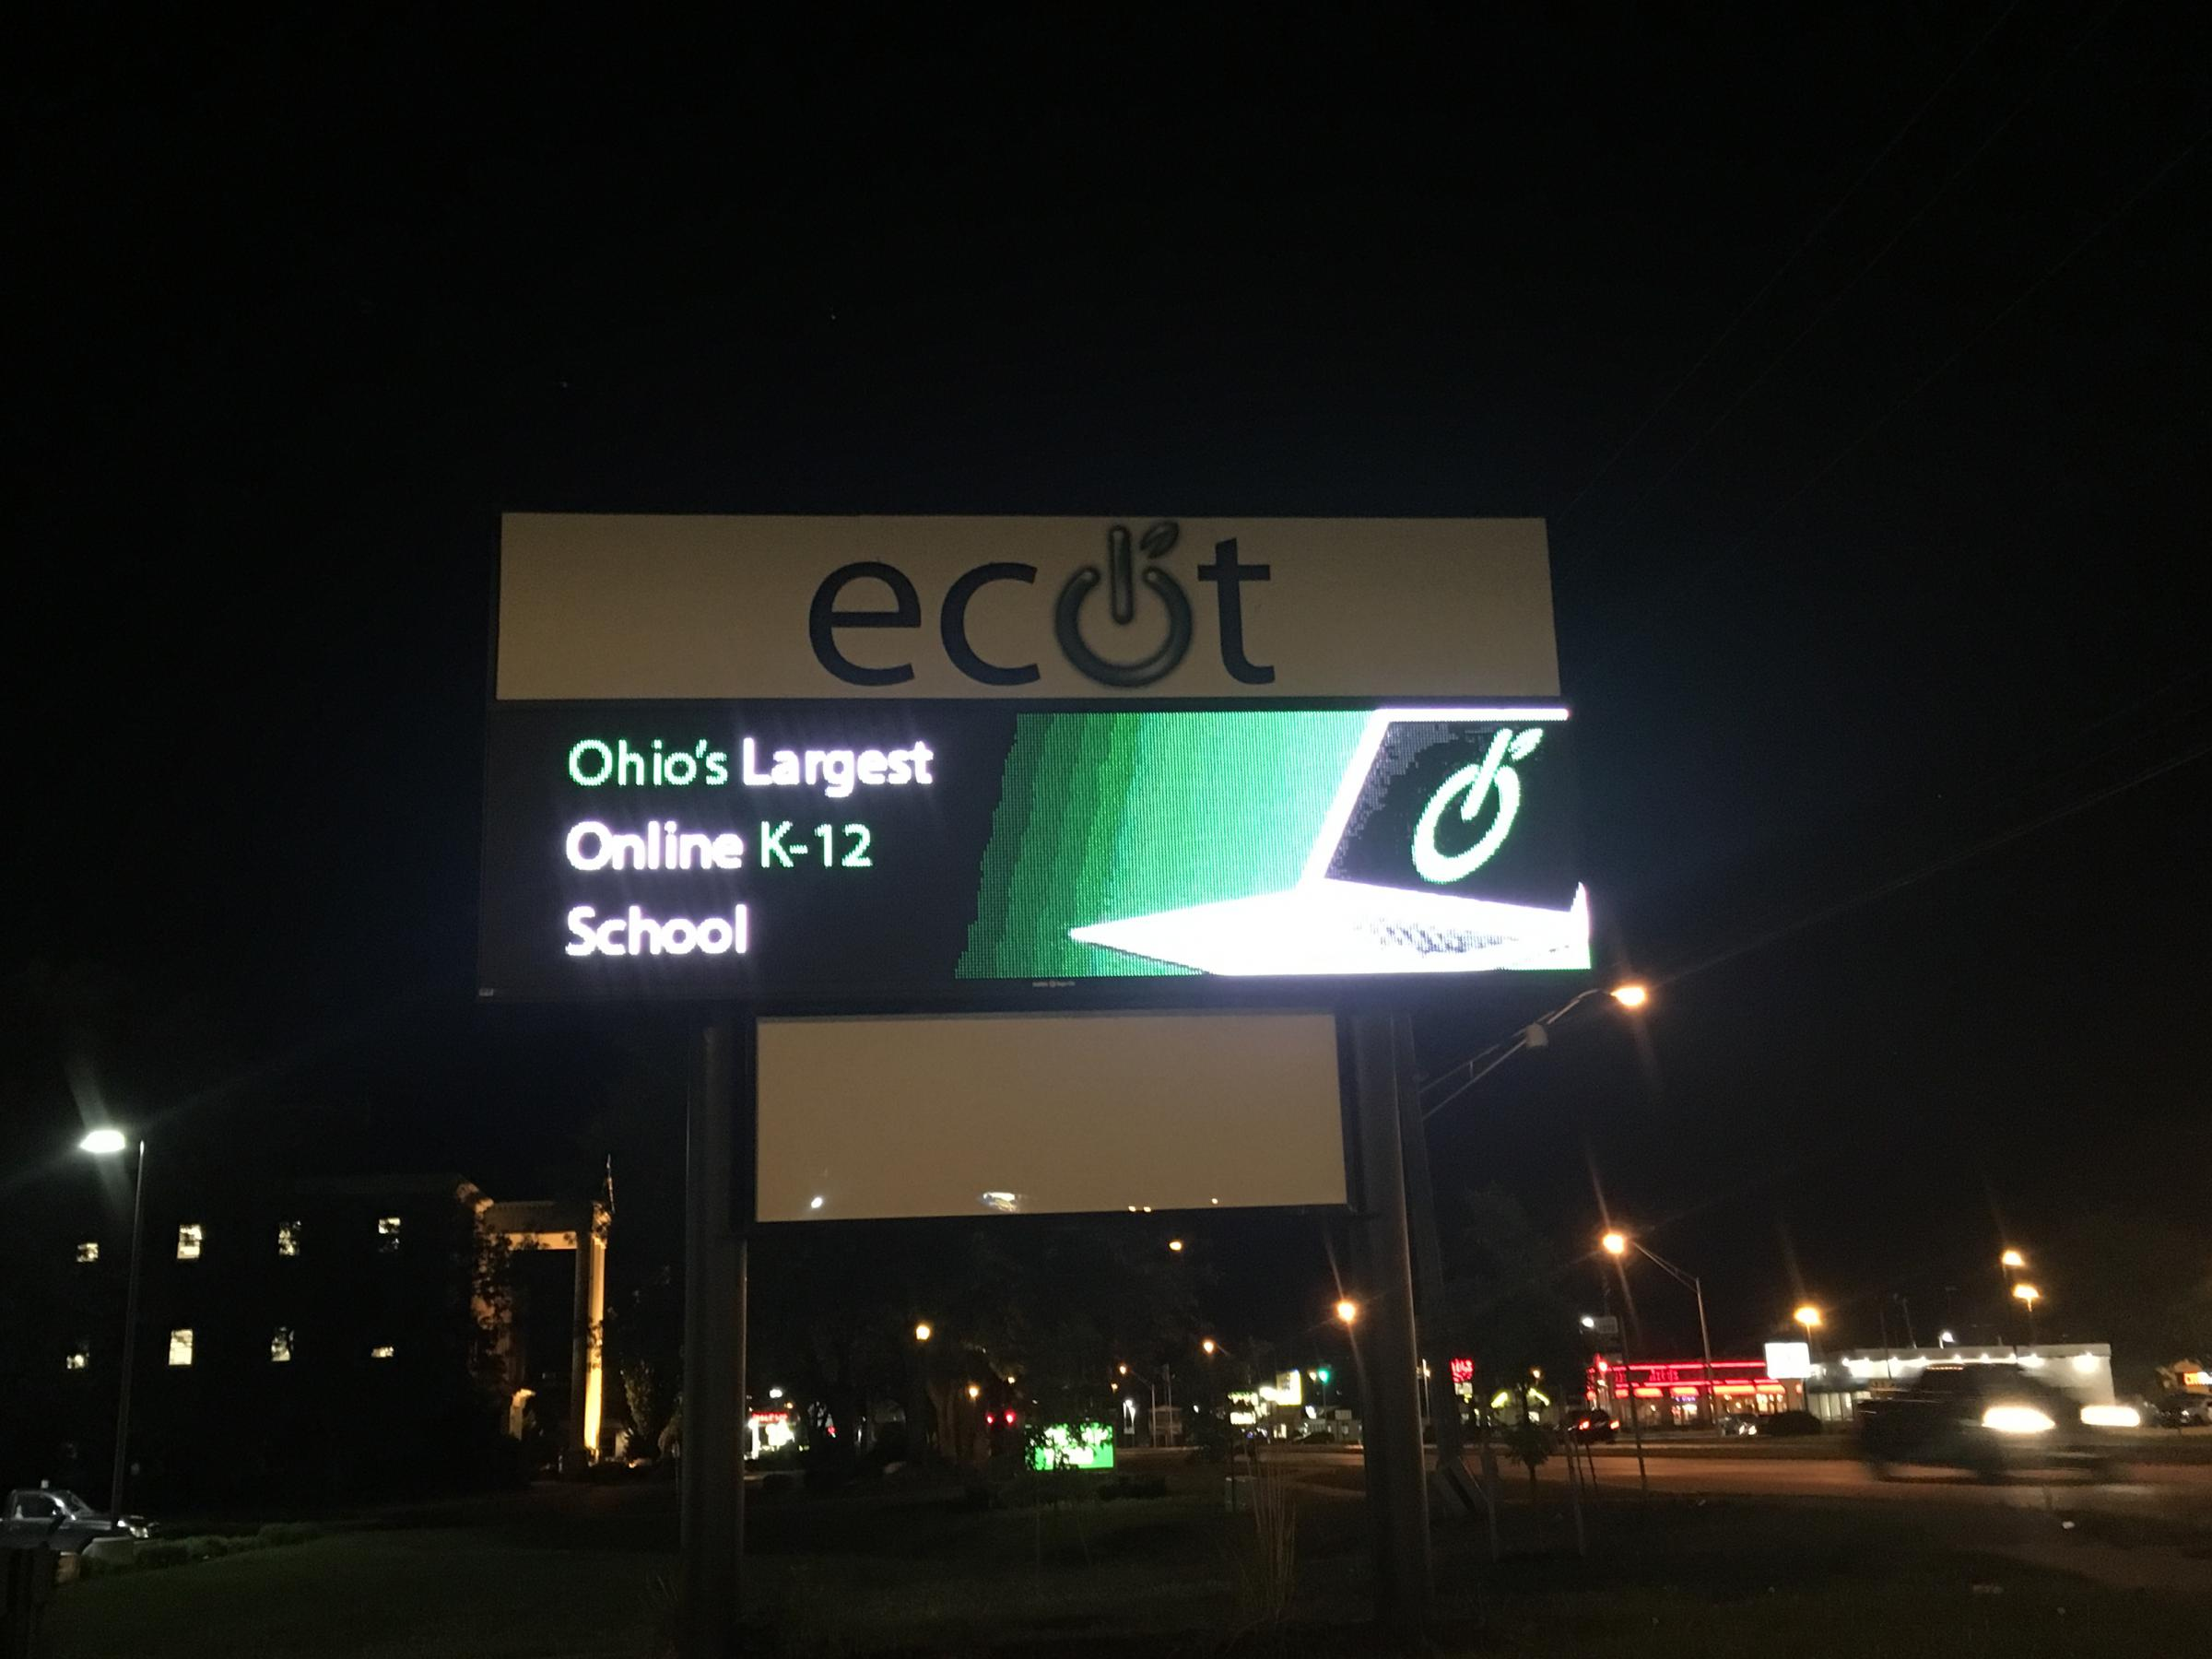 As ECOT Shuts Down, Columbus City Schools Reaches Out To Students